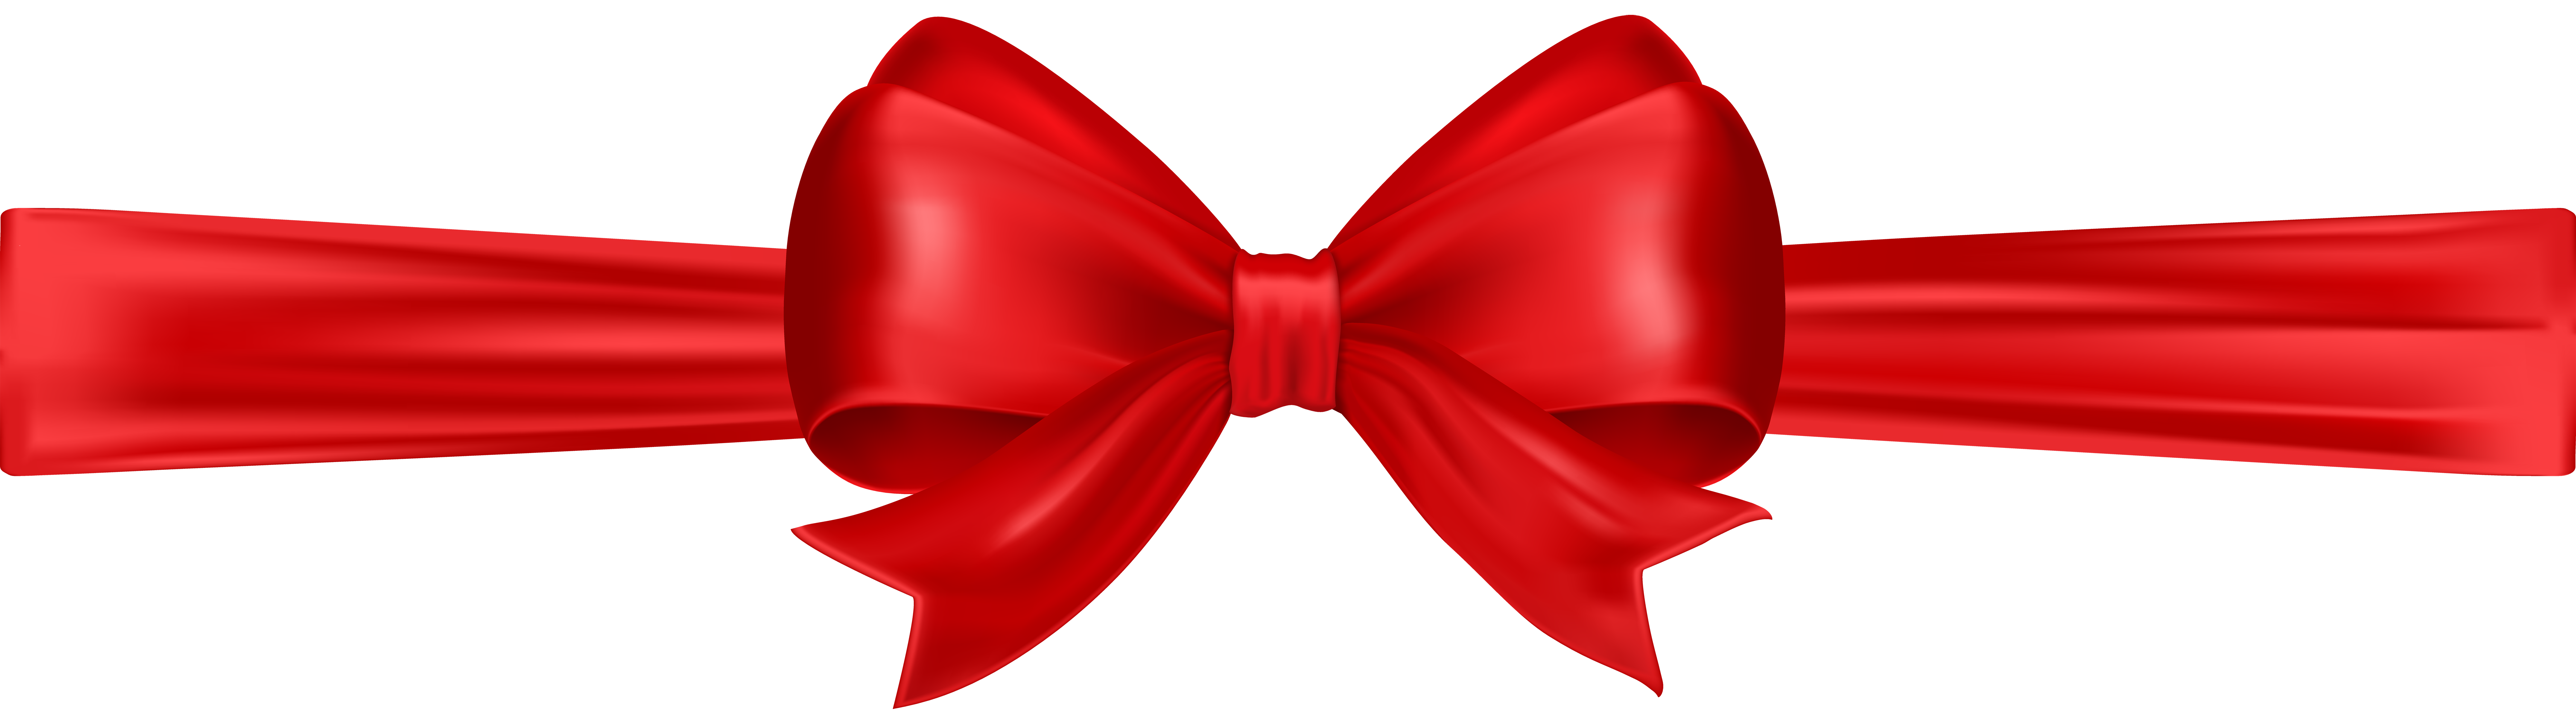 Red bow png. Clip art image gallery